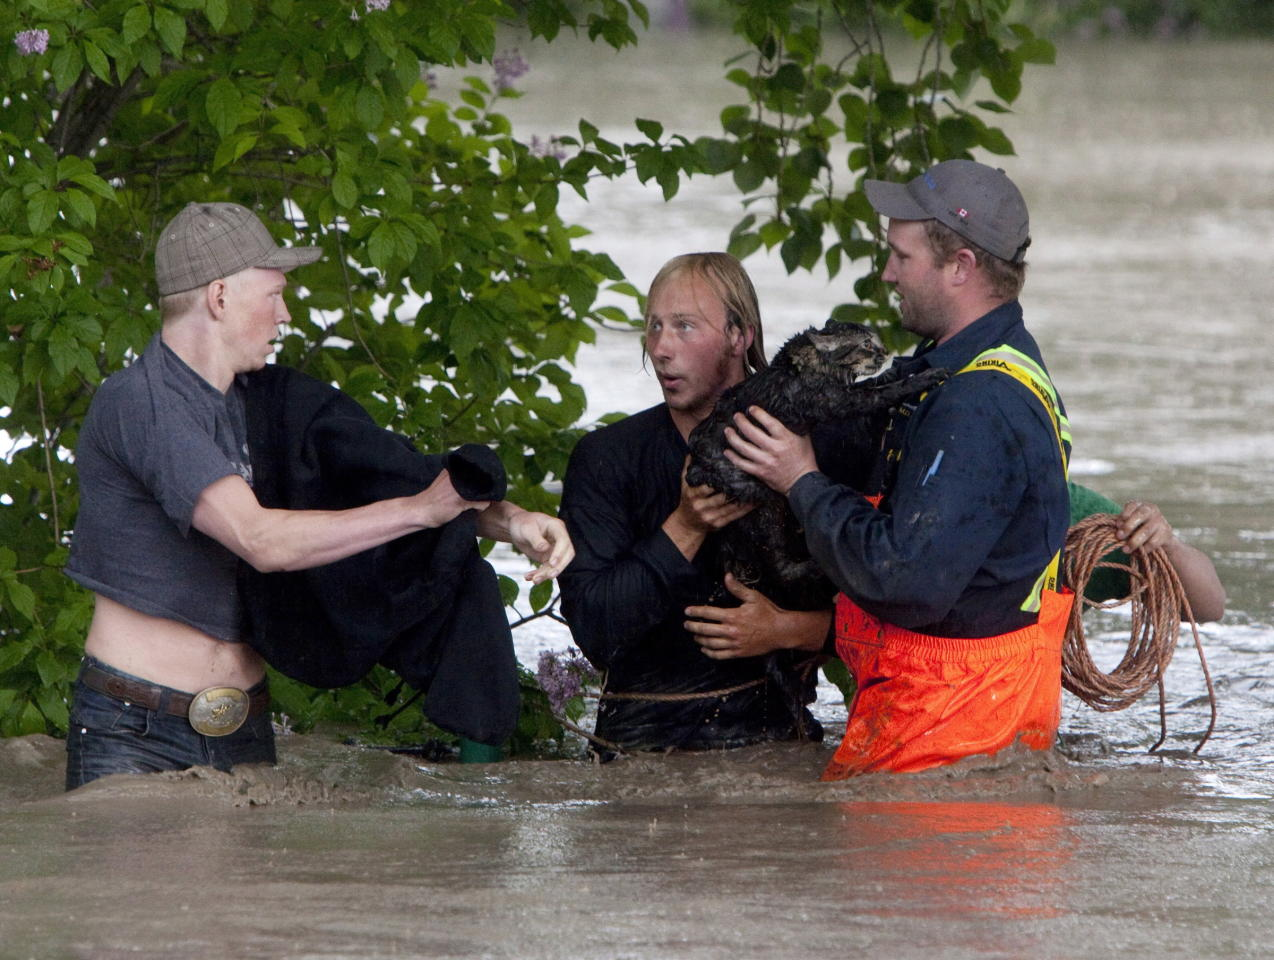 Kevan Yaets and his cat Momo are led to safety excaping his pick-up swept downstream in High River, Alta. on June 20, 2013 after the Highwood River overflowed its banks.